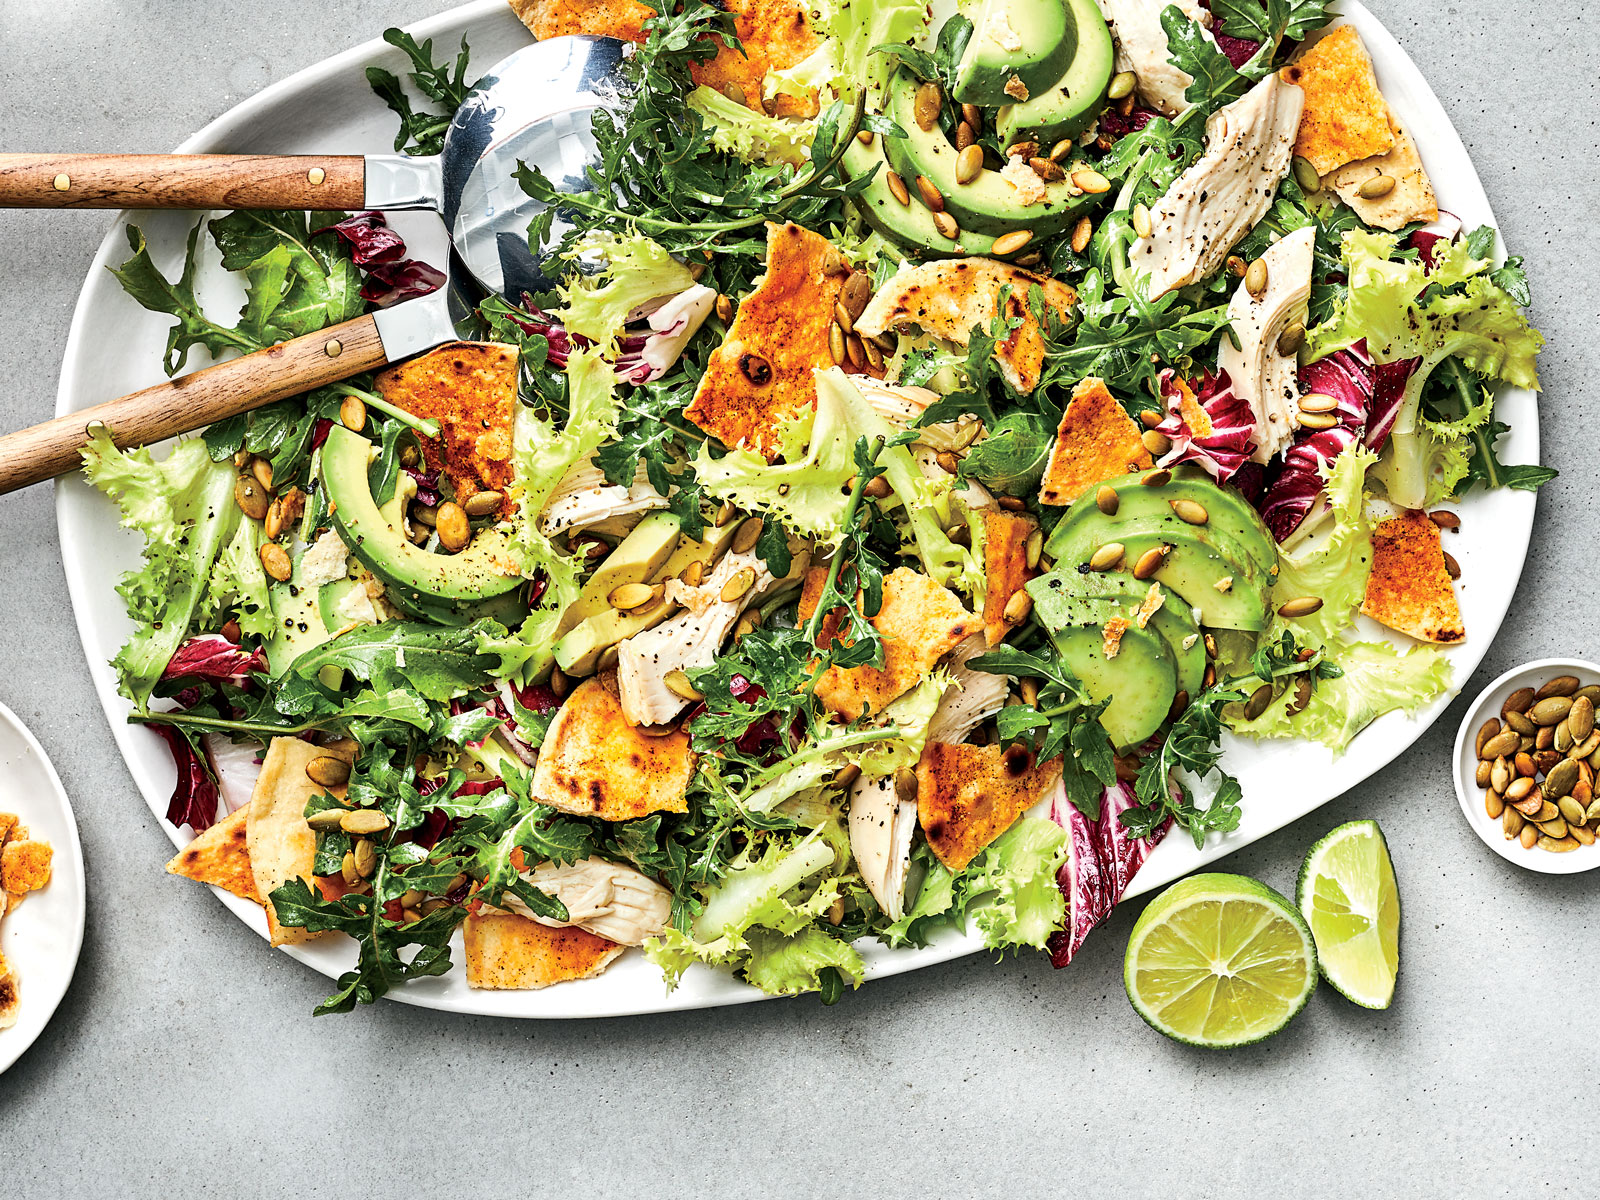 Peppery Greens Salad 